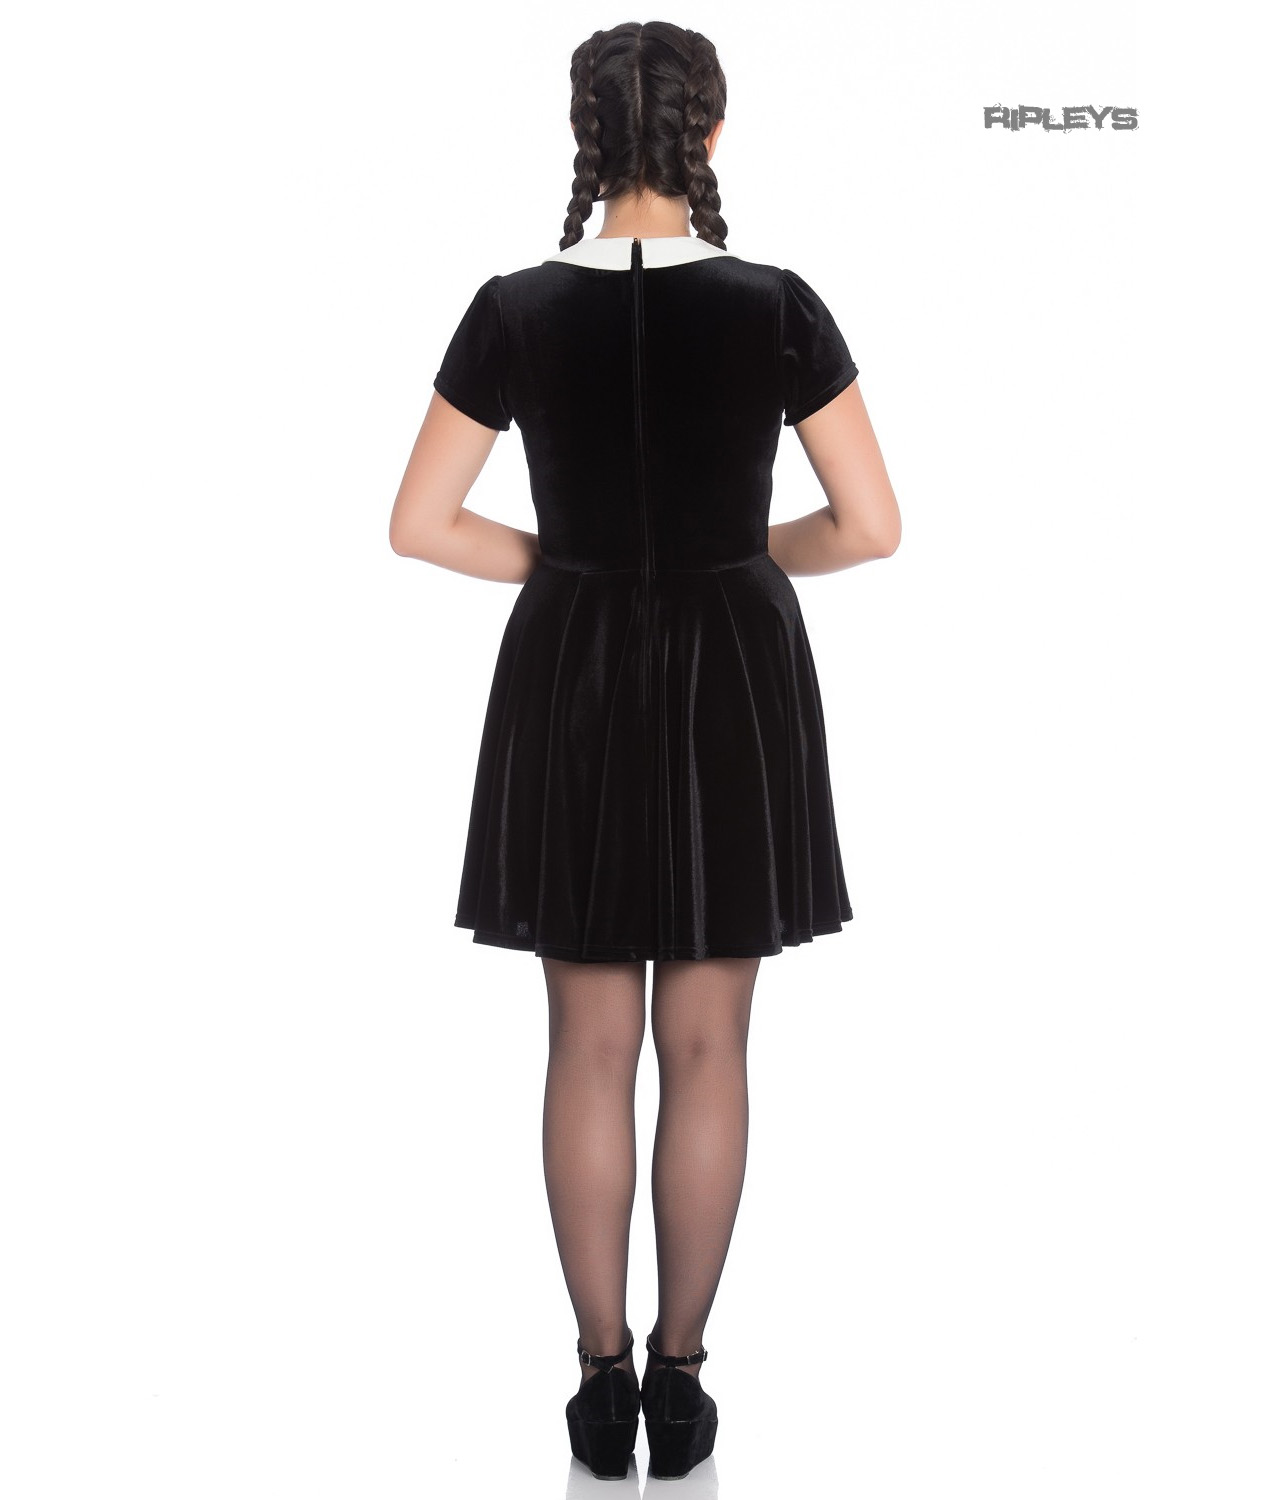 Hell-Bunny-Gothic-Mini-Skater-Dress-MISS-MUFFET-Spiders-Black-Velvet-All-Sizes thumbnail 24